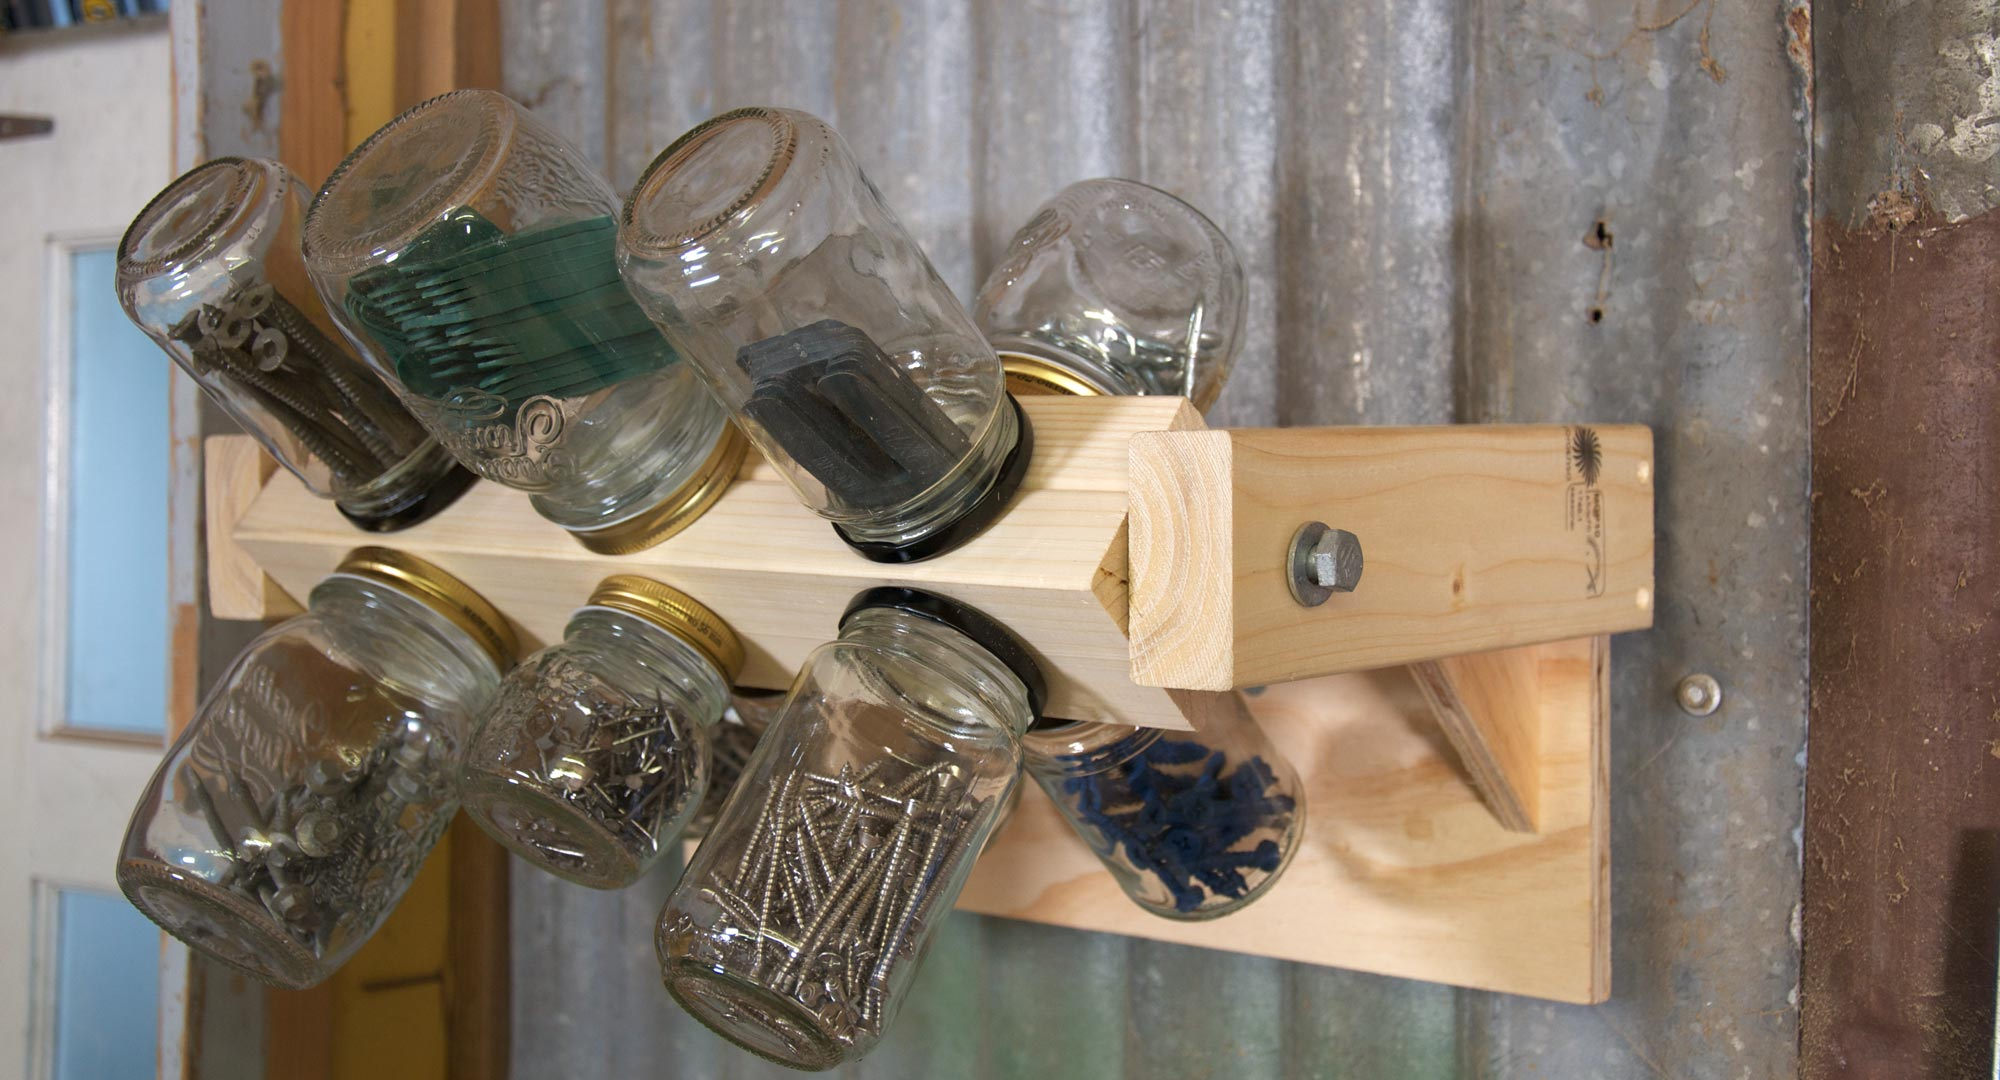 How To Make A Screw Storage Better Homes And Gardens